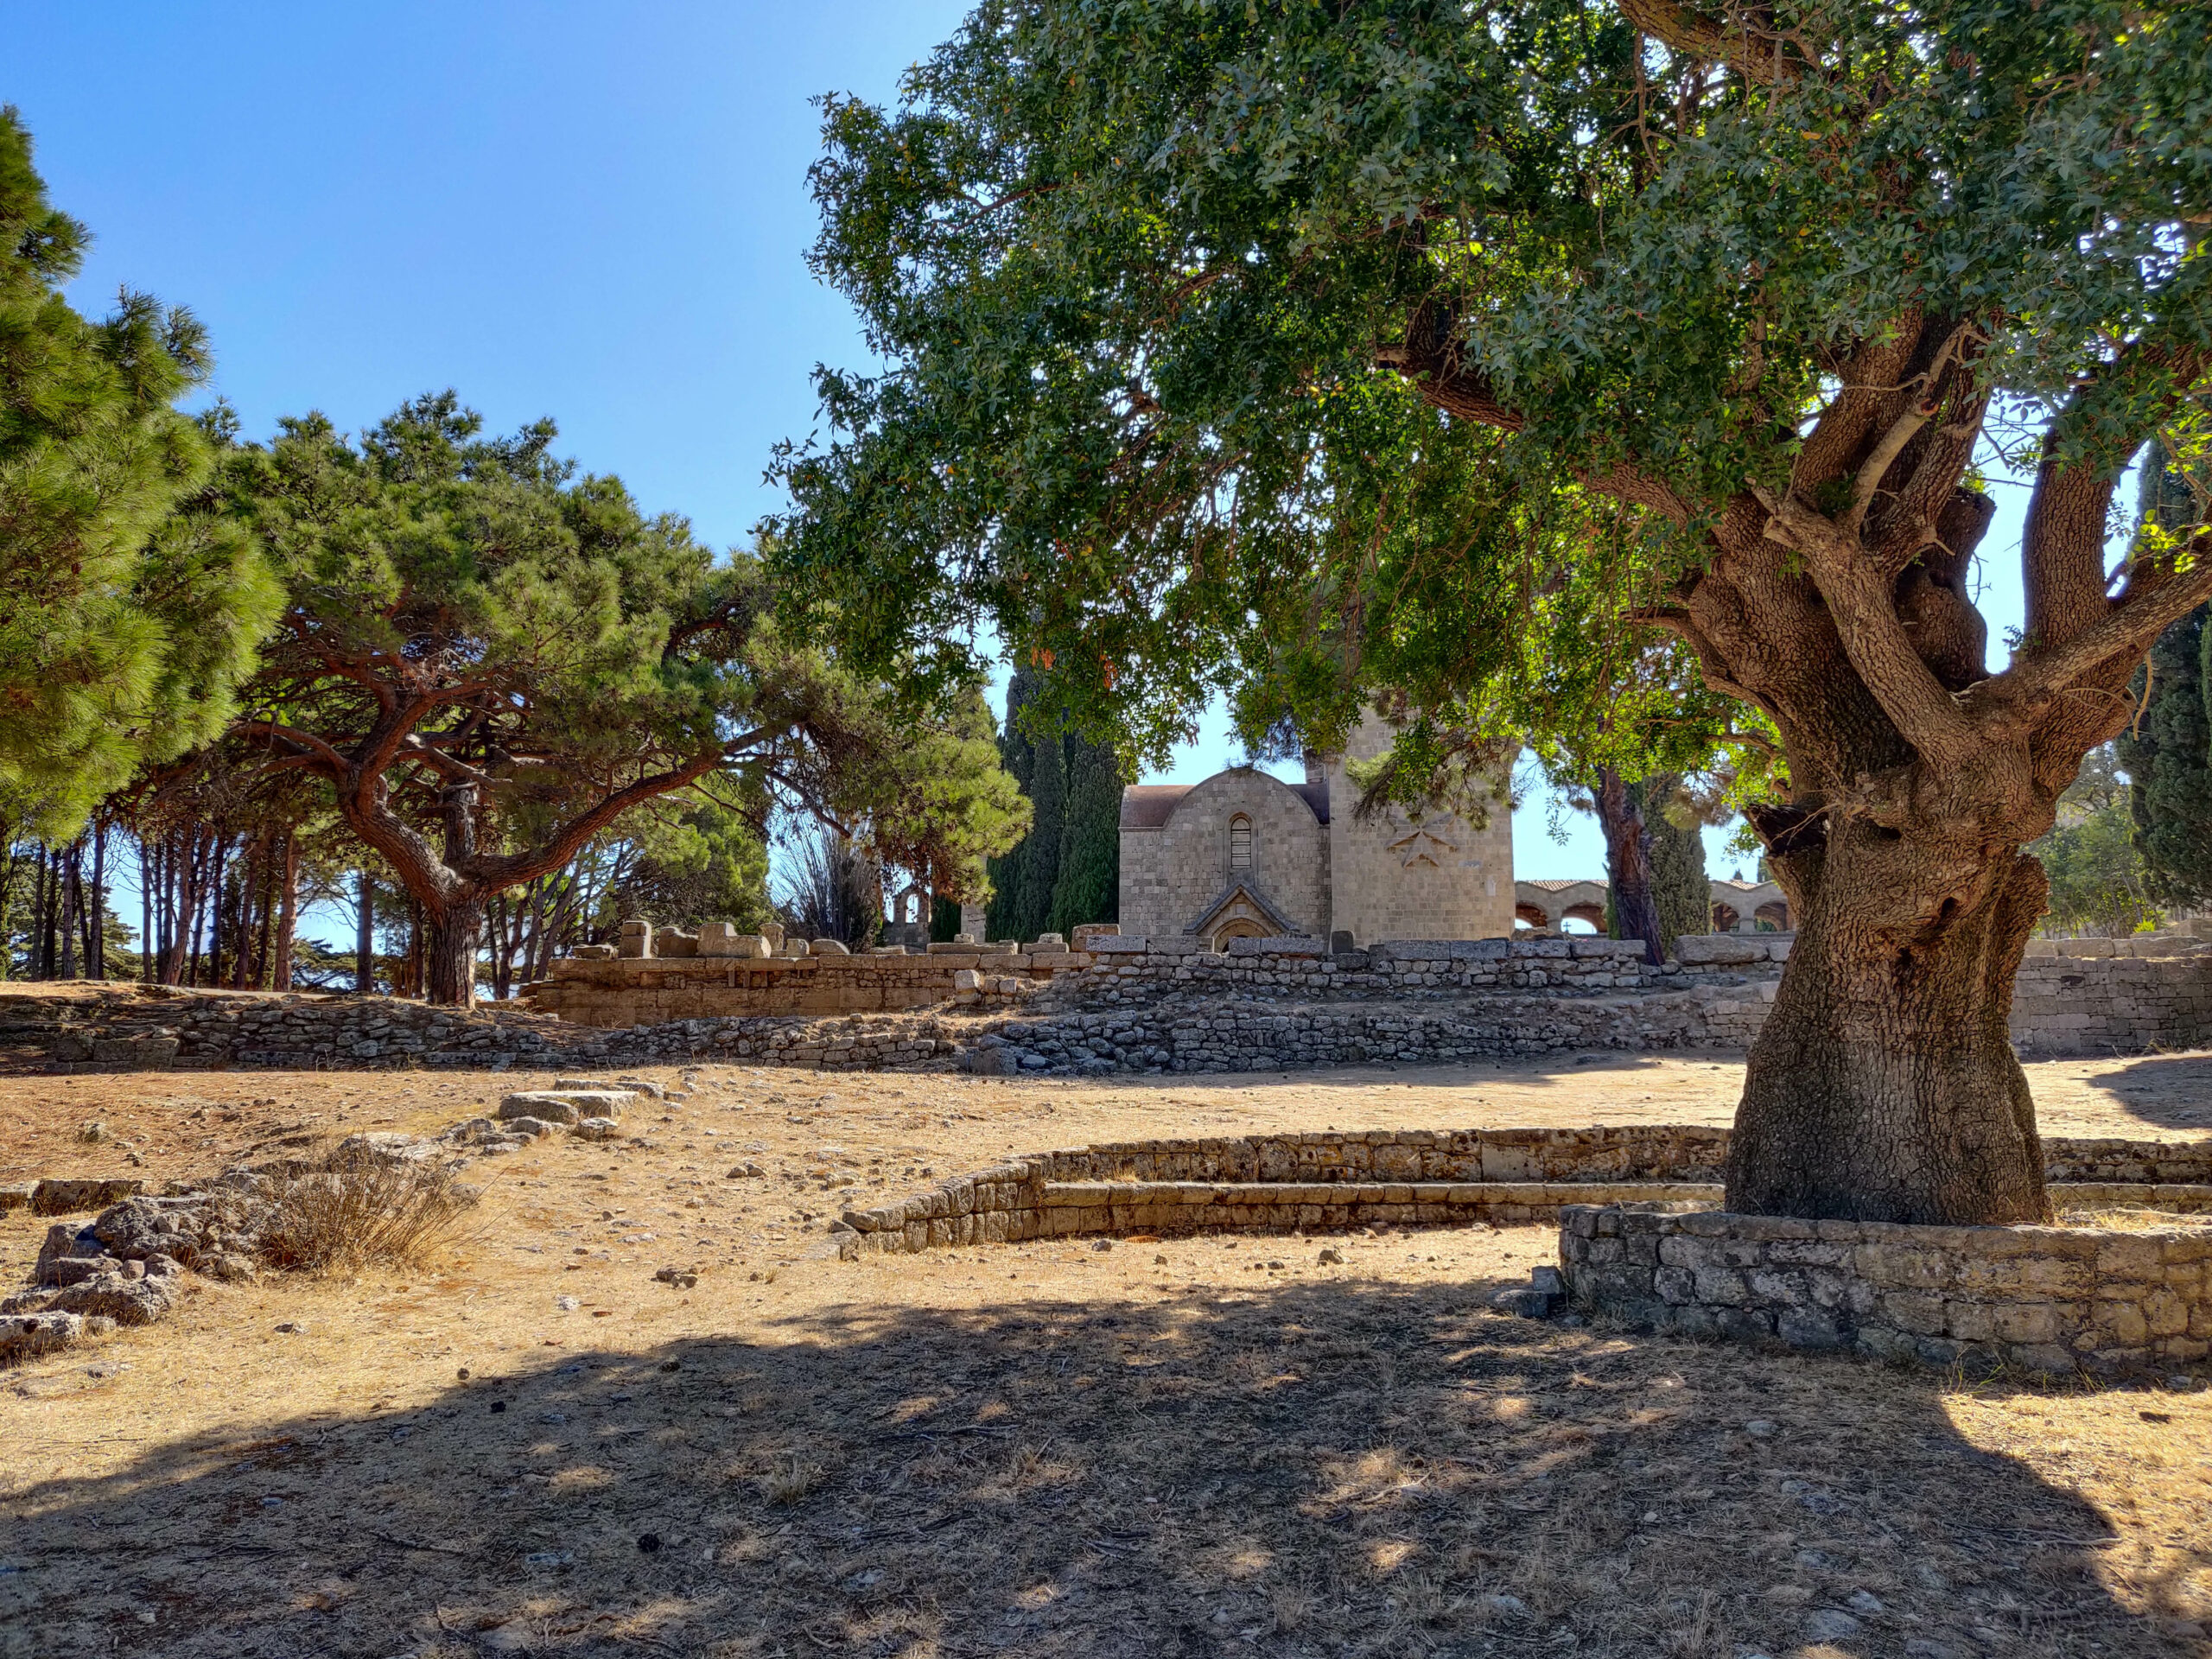 Go for a nice morning stroll in Ancient Ialysos Ιαλυσός